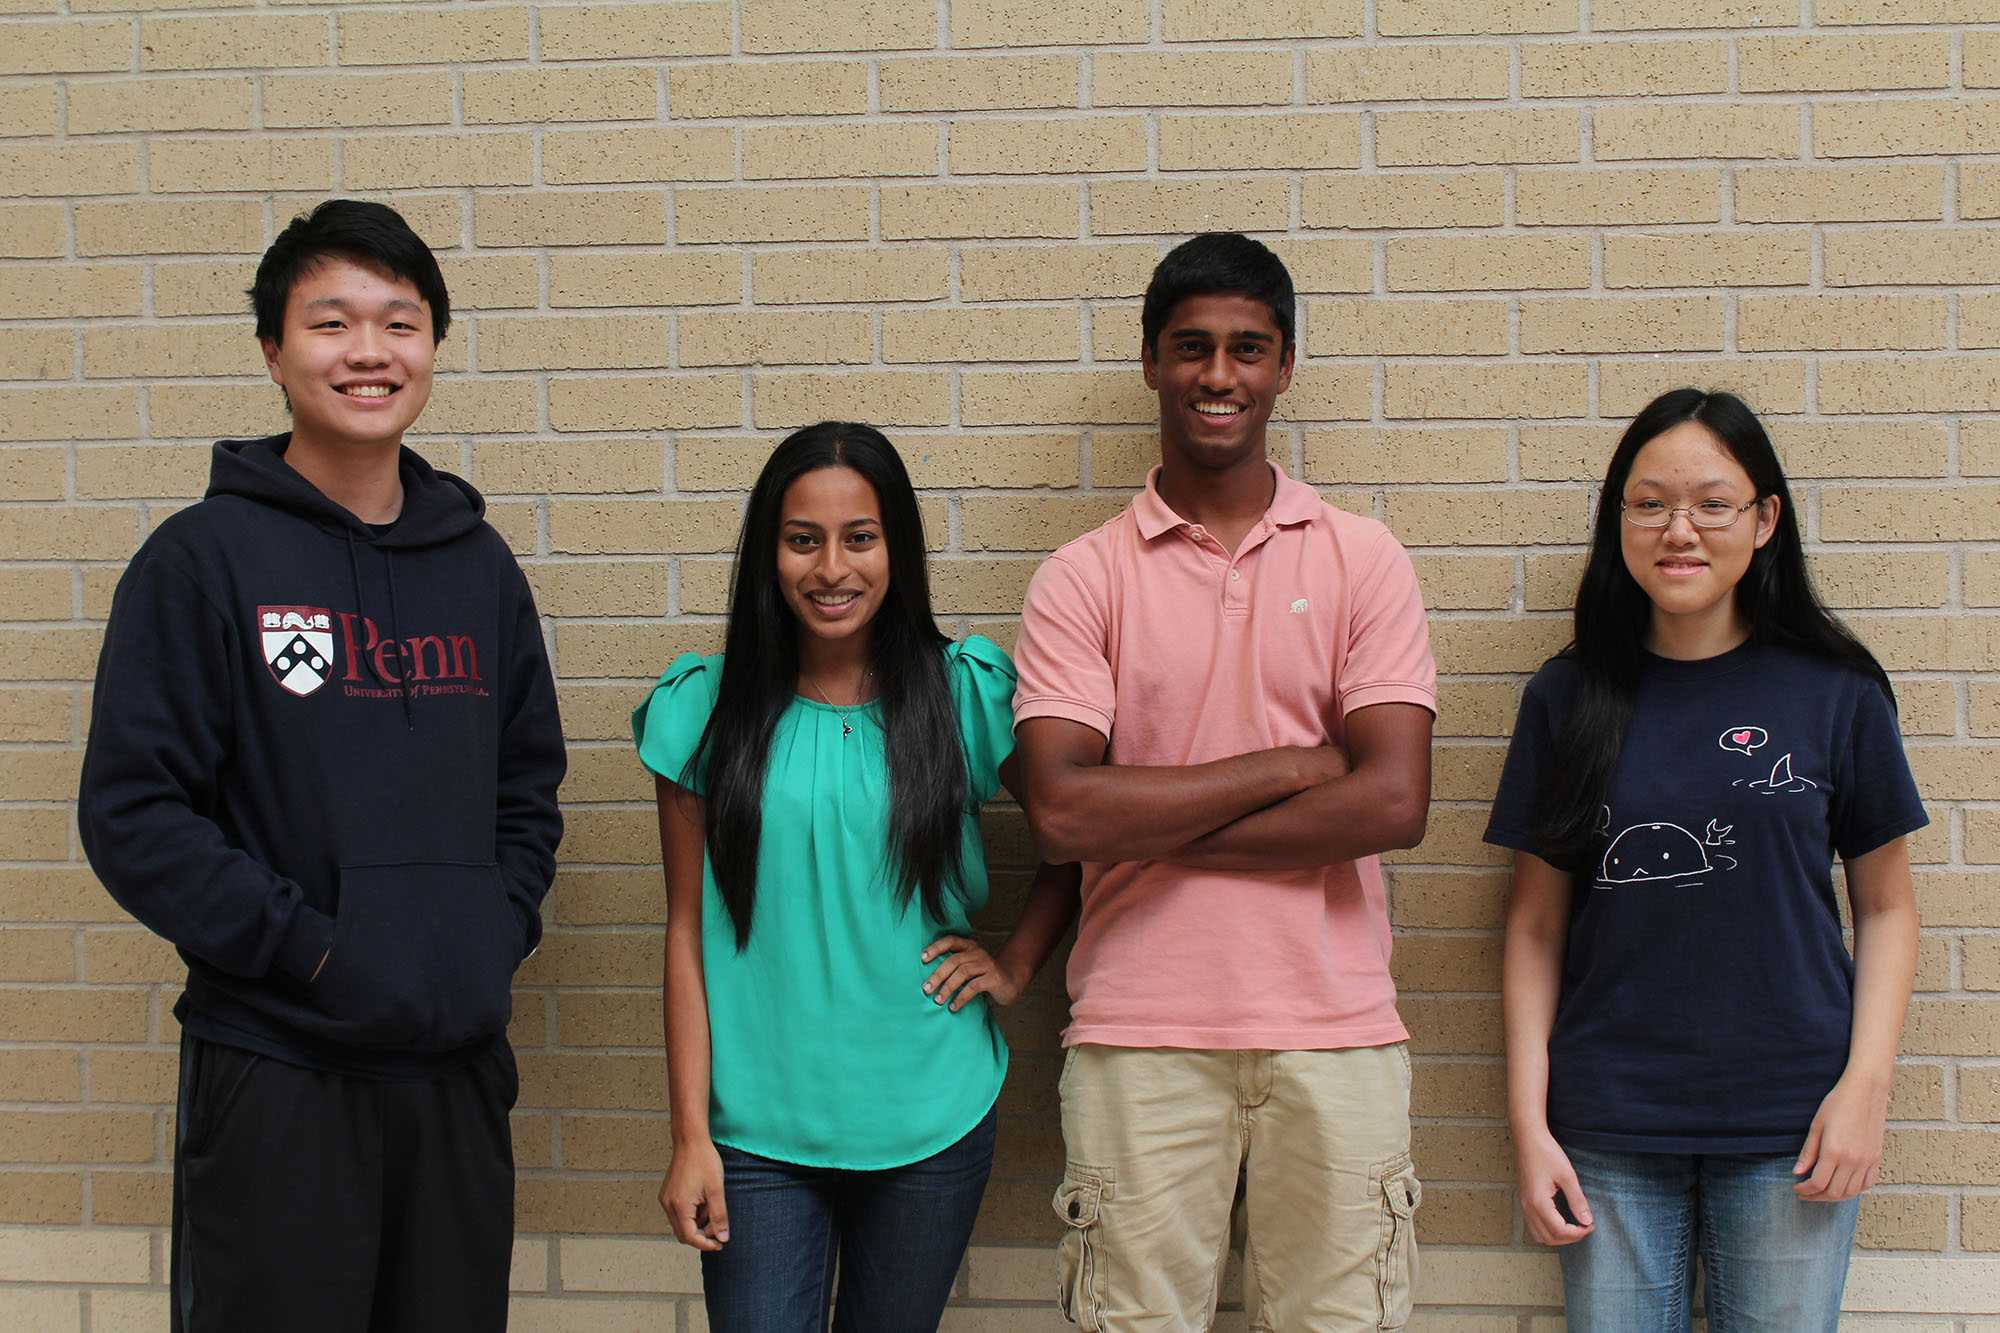 From left to right: David Zhou, Roshni Thachil, Ravichand Ramireddy, and Jane He. Not pictured: Randa Foote.